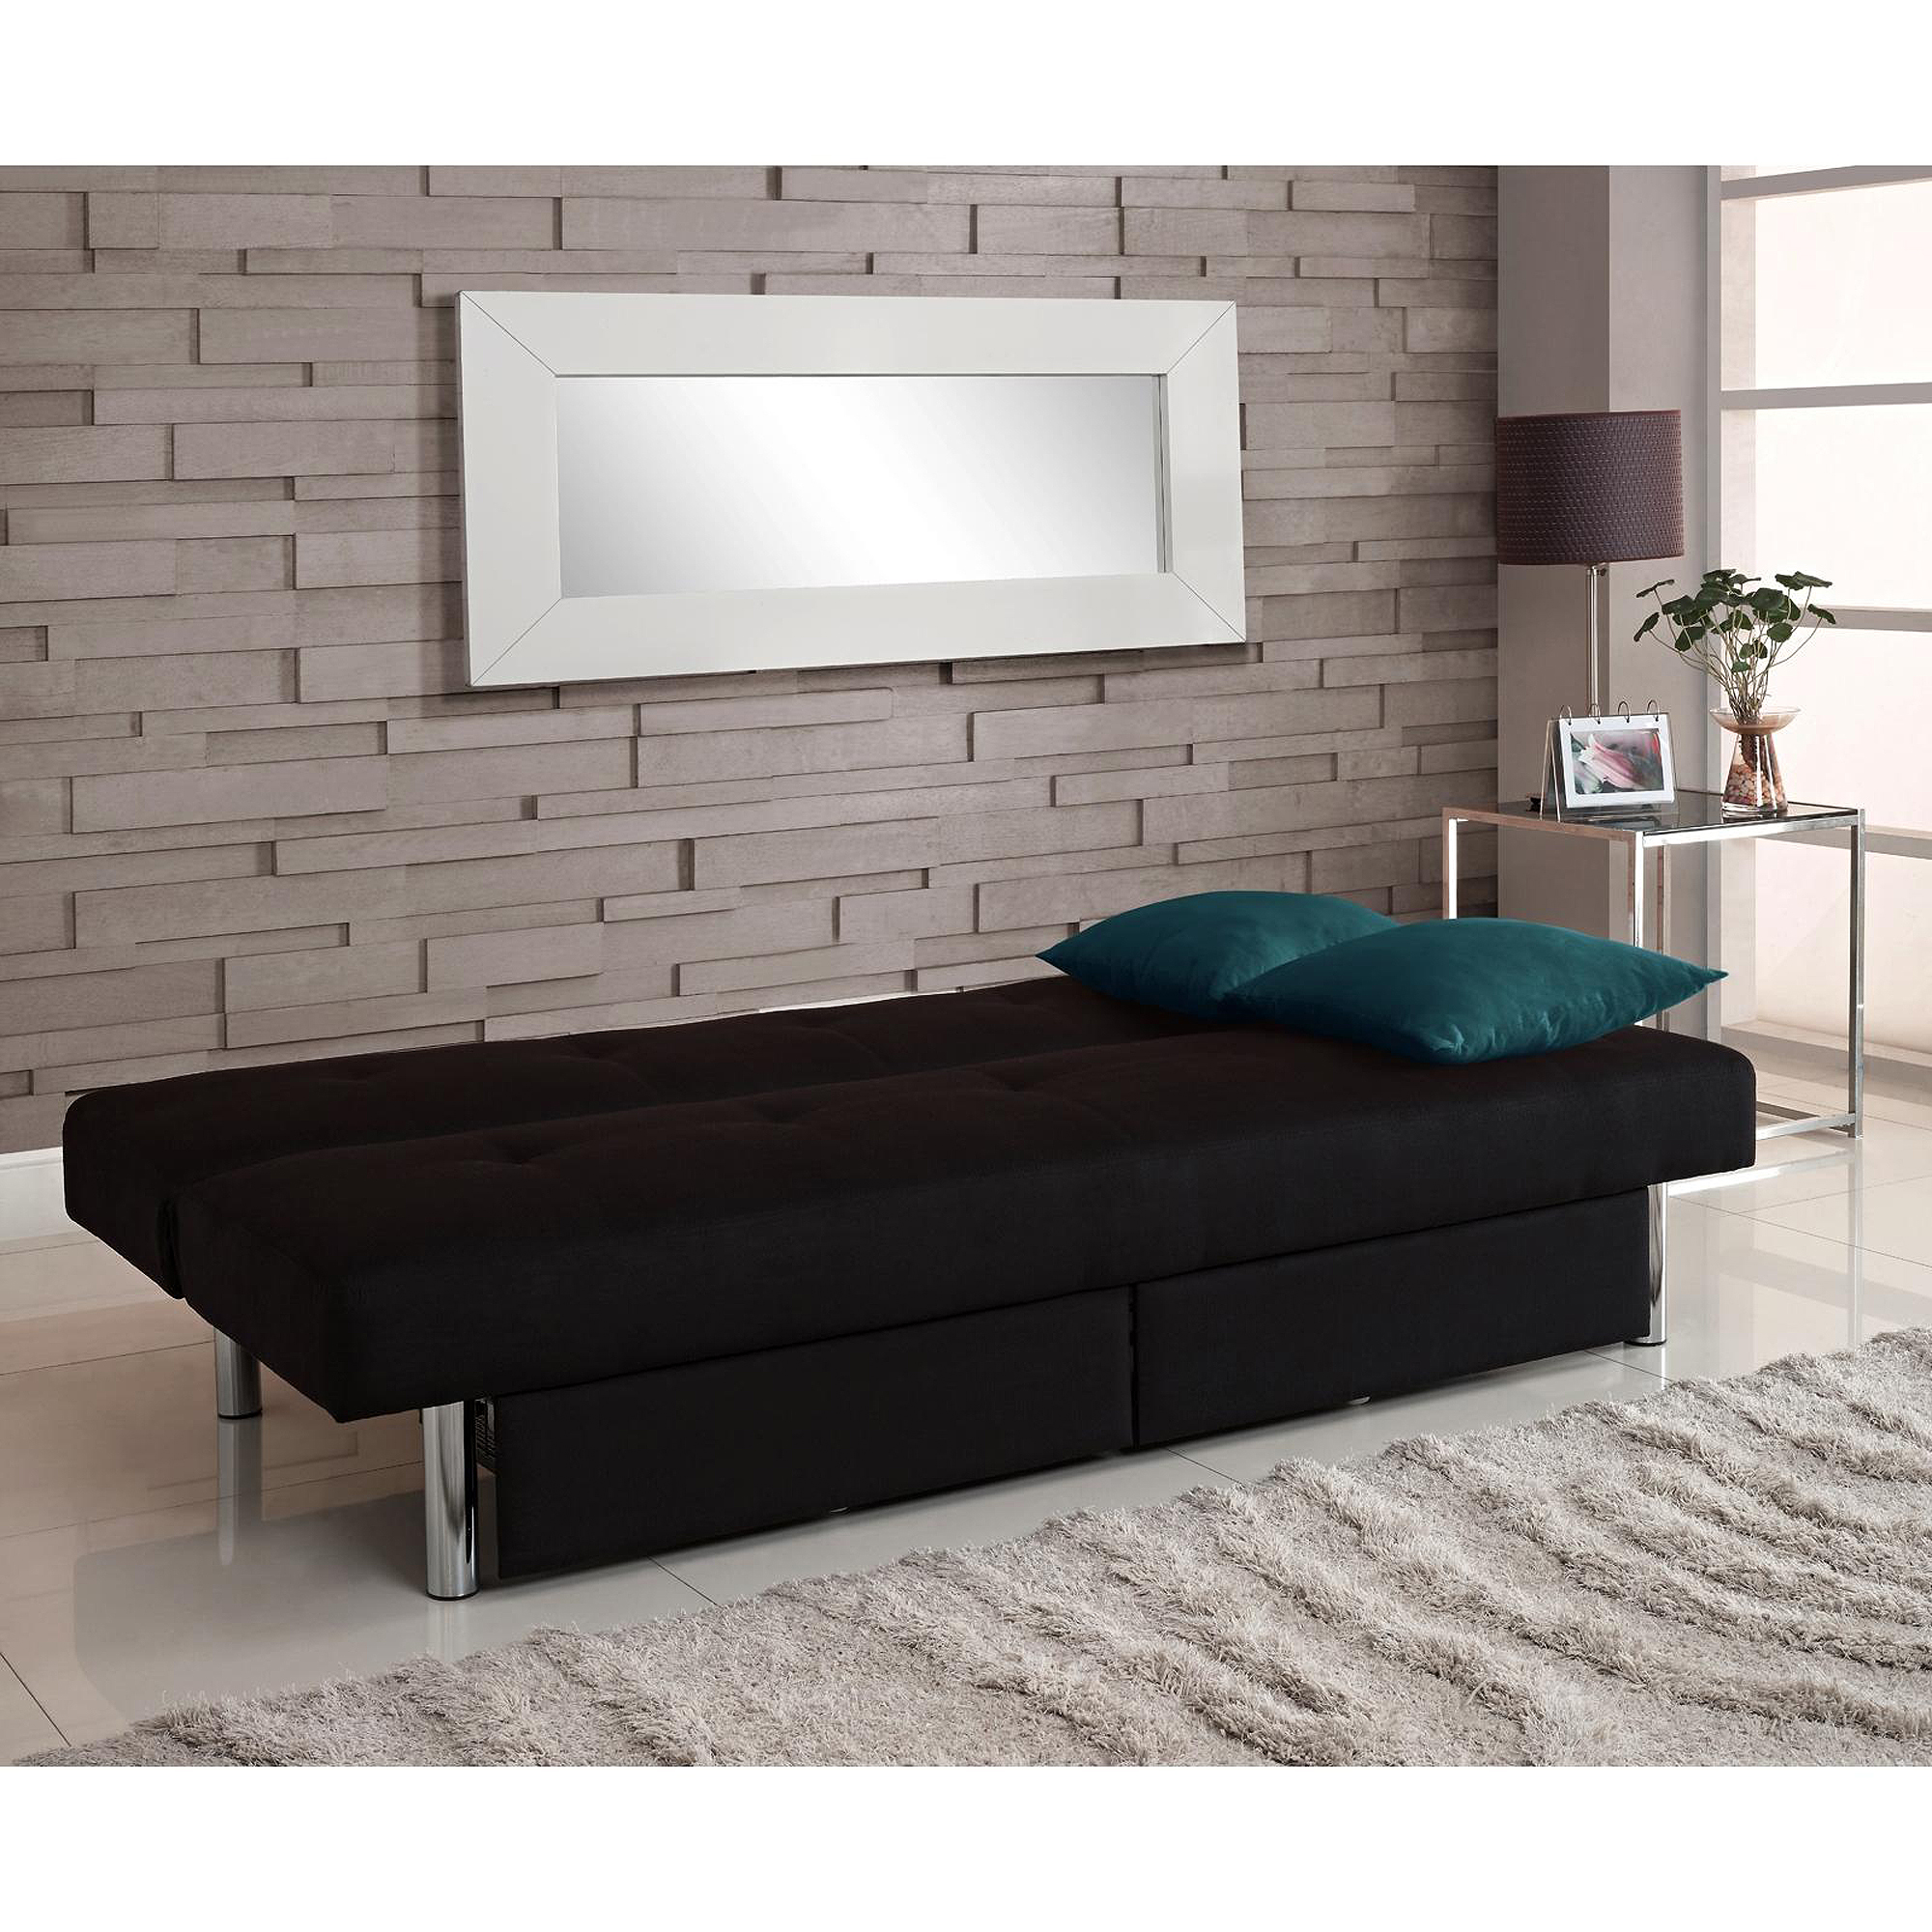 Details about Microfiber Fold Down Futon Sofa Bed Couch Sleeper Furniture  Lounge Convertible